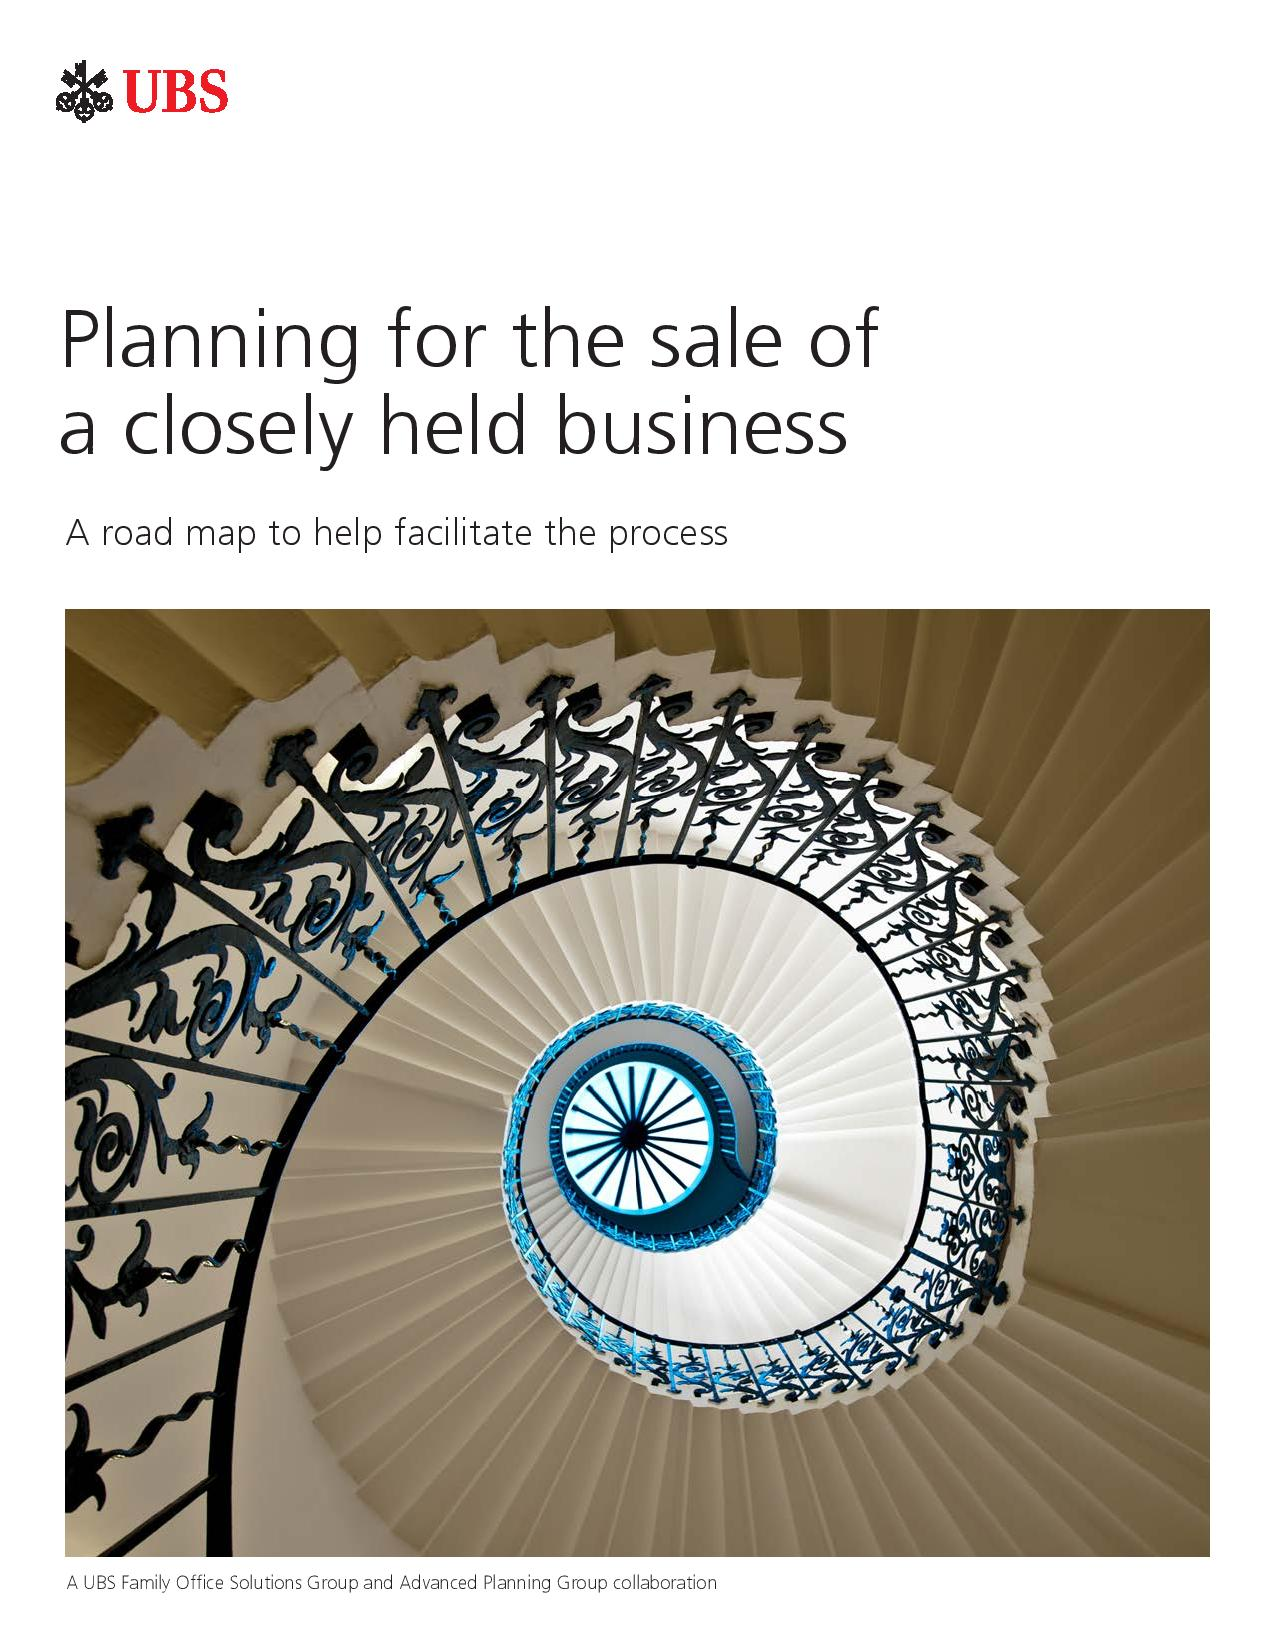 Planning for the Sale of a Closely Held Business